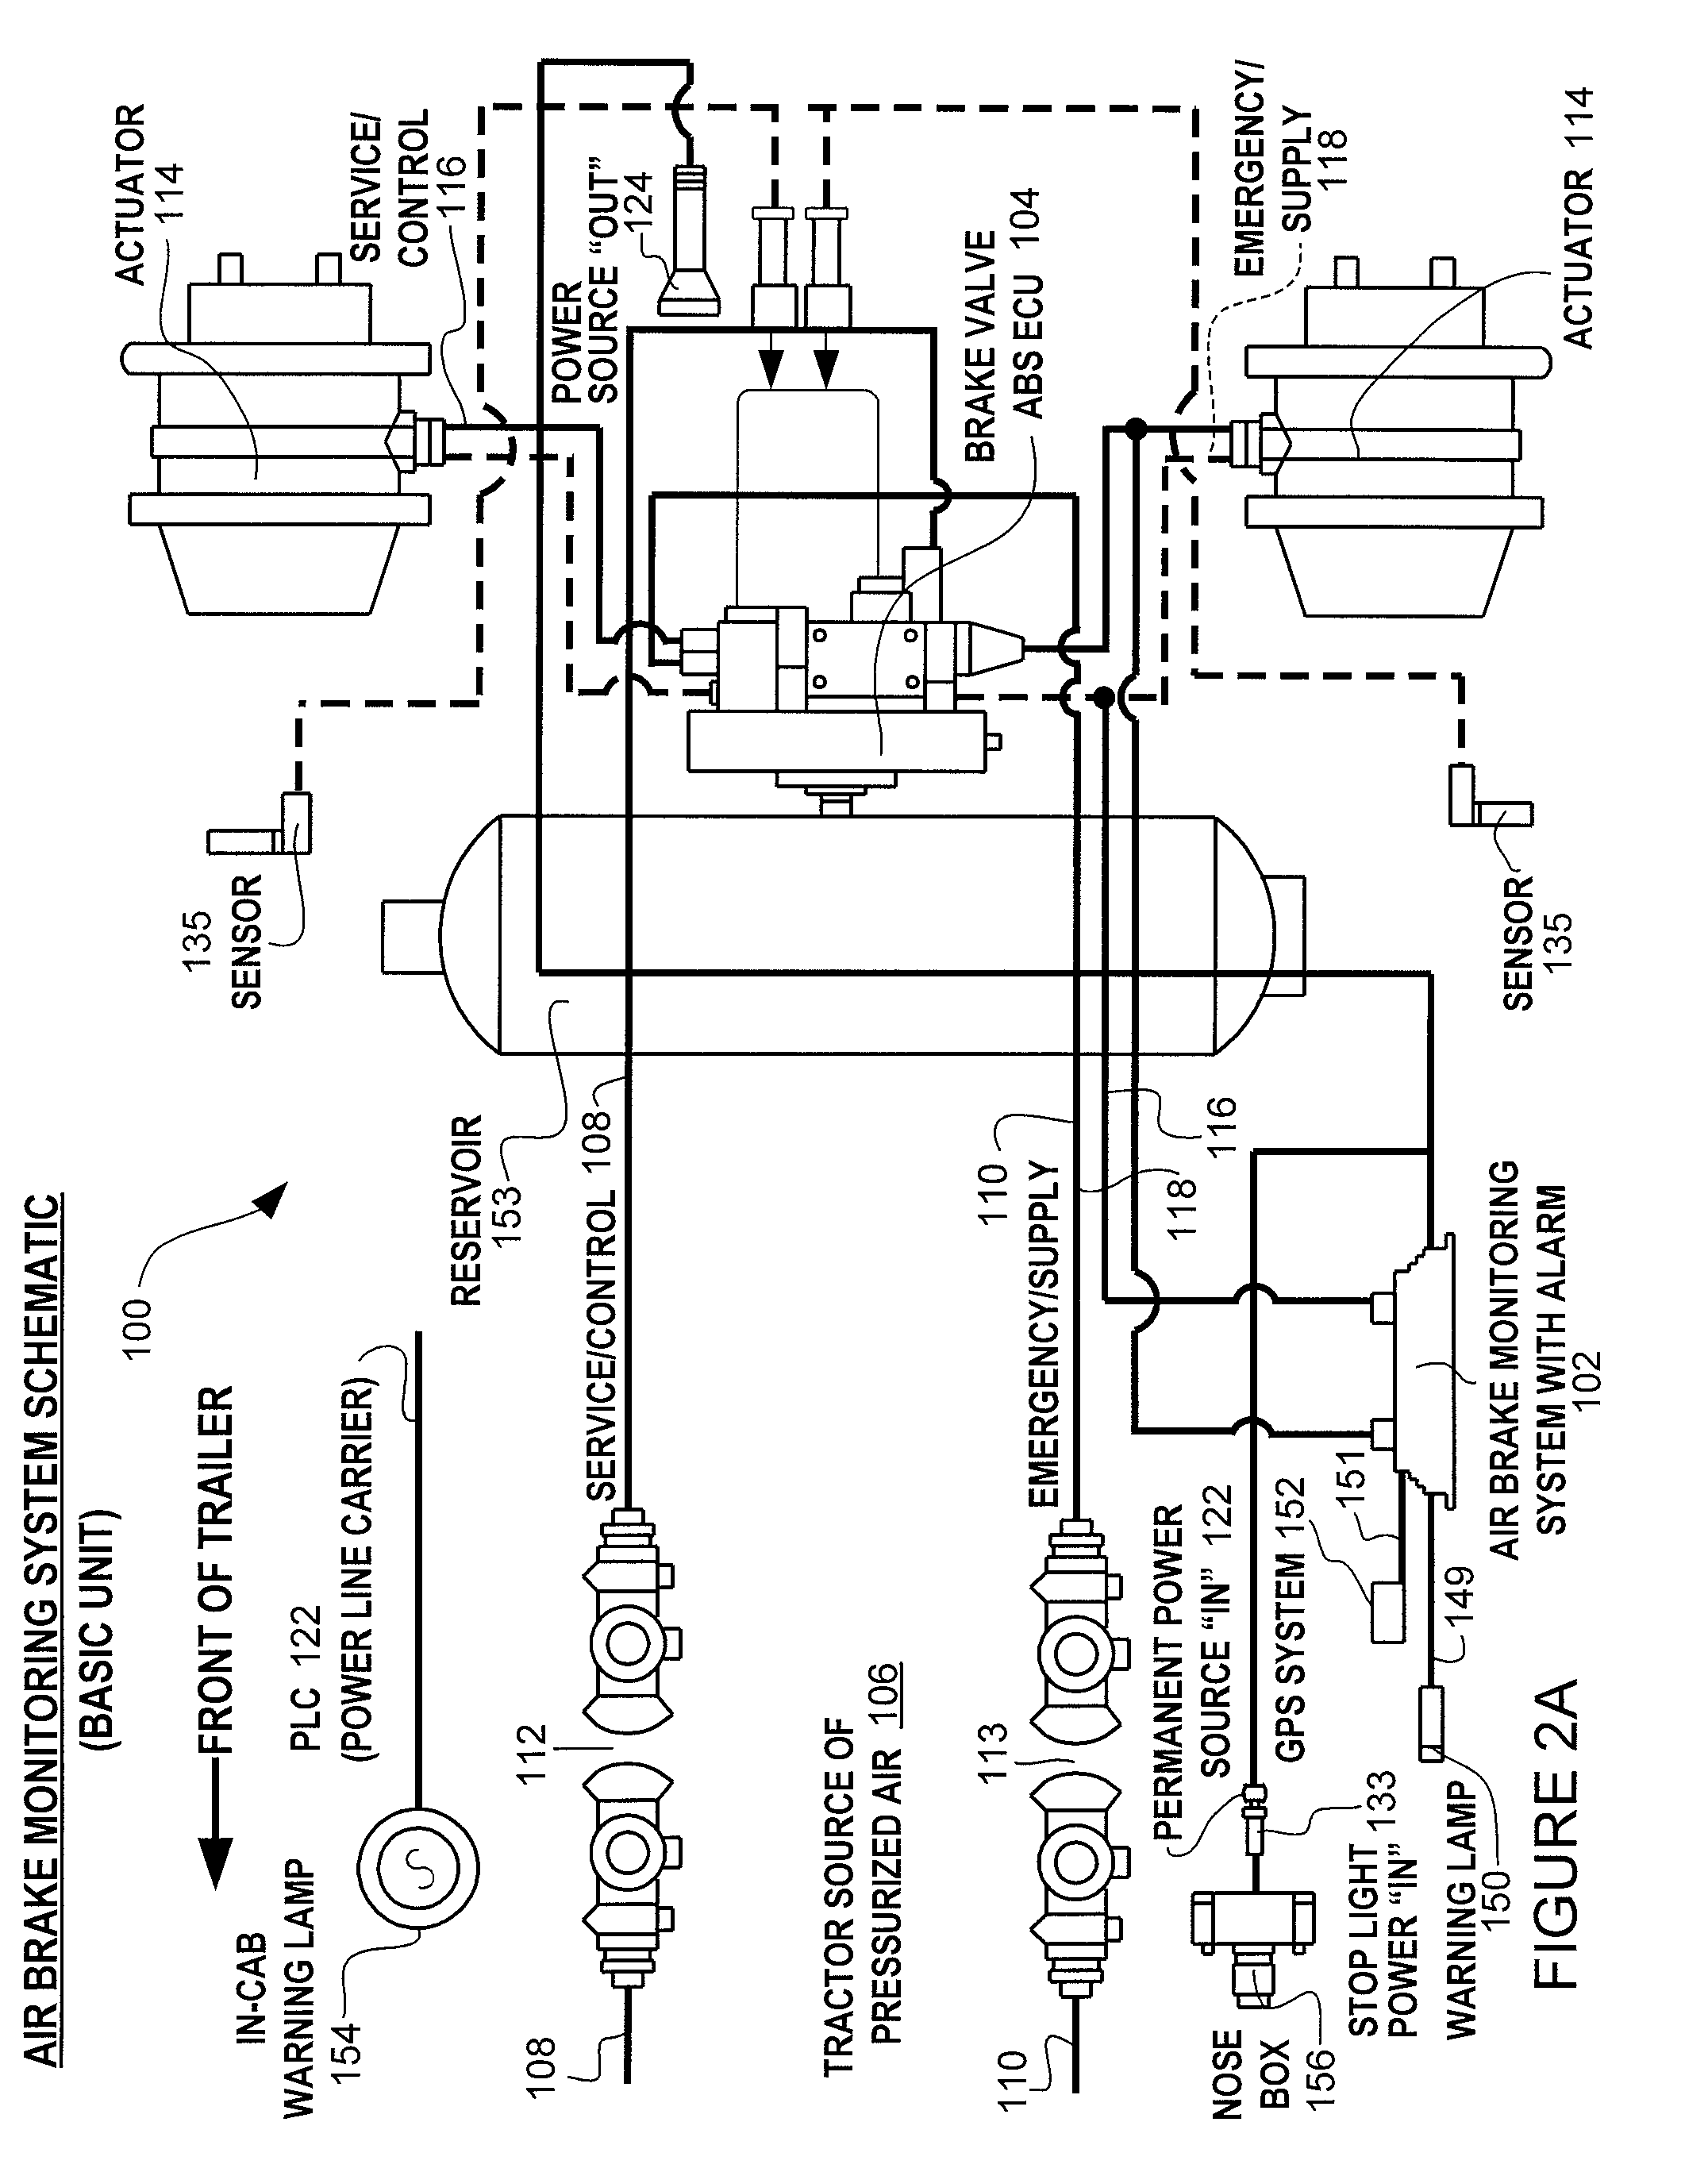 Stunning 1995 Buick Wiring Harness Schematics Contemporary – L36 Wiring Diagrams For 1996 Buick Riviera